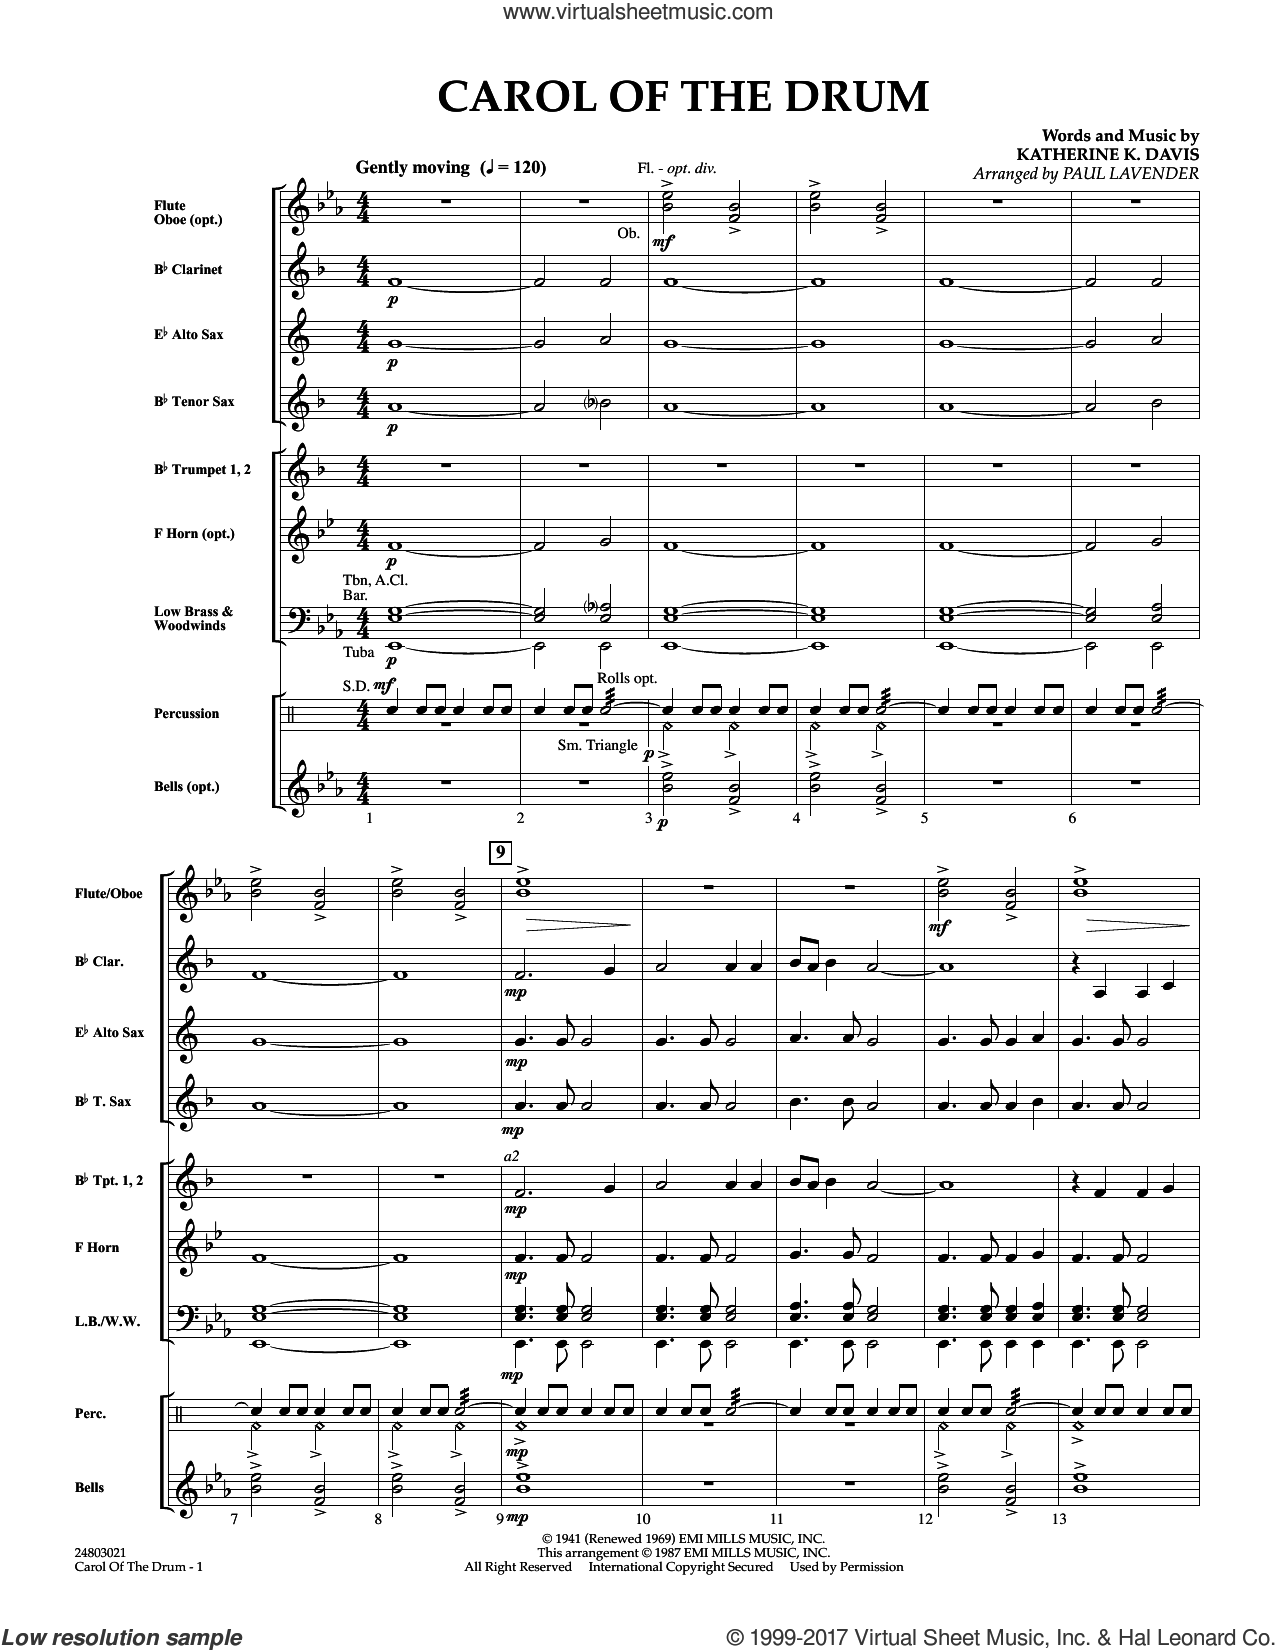 Carol of the Drum (COMPLETE) sheet music for concert band by Paul Lavender and Katherine Davis, intermediate skill level